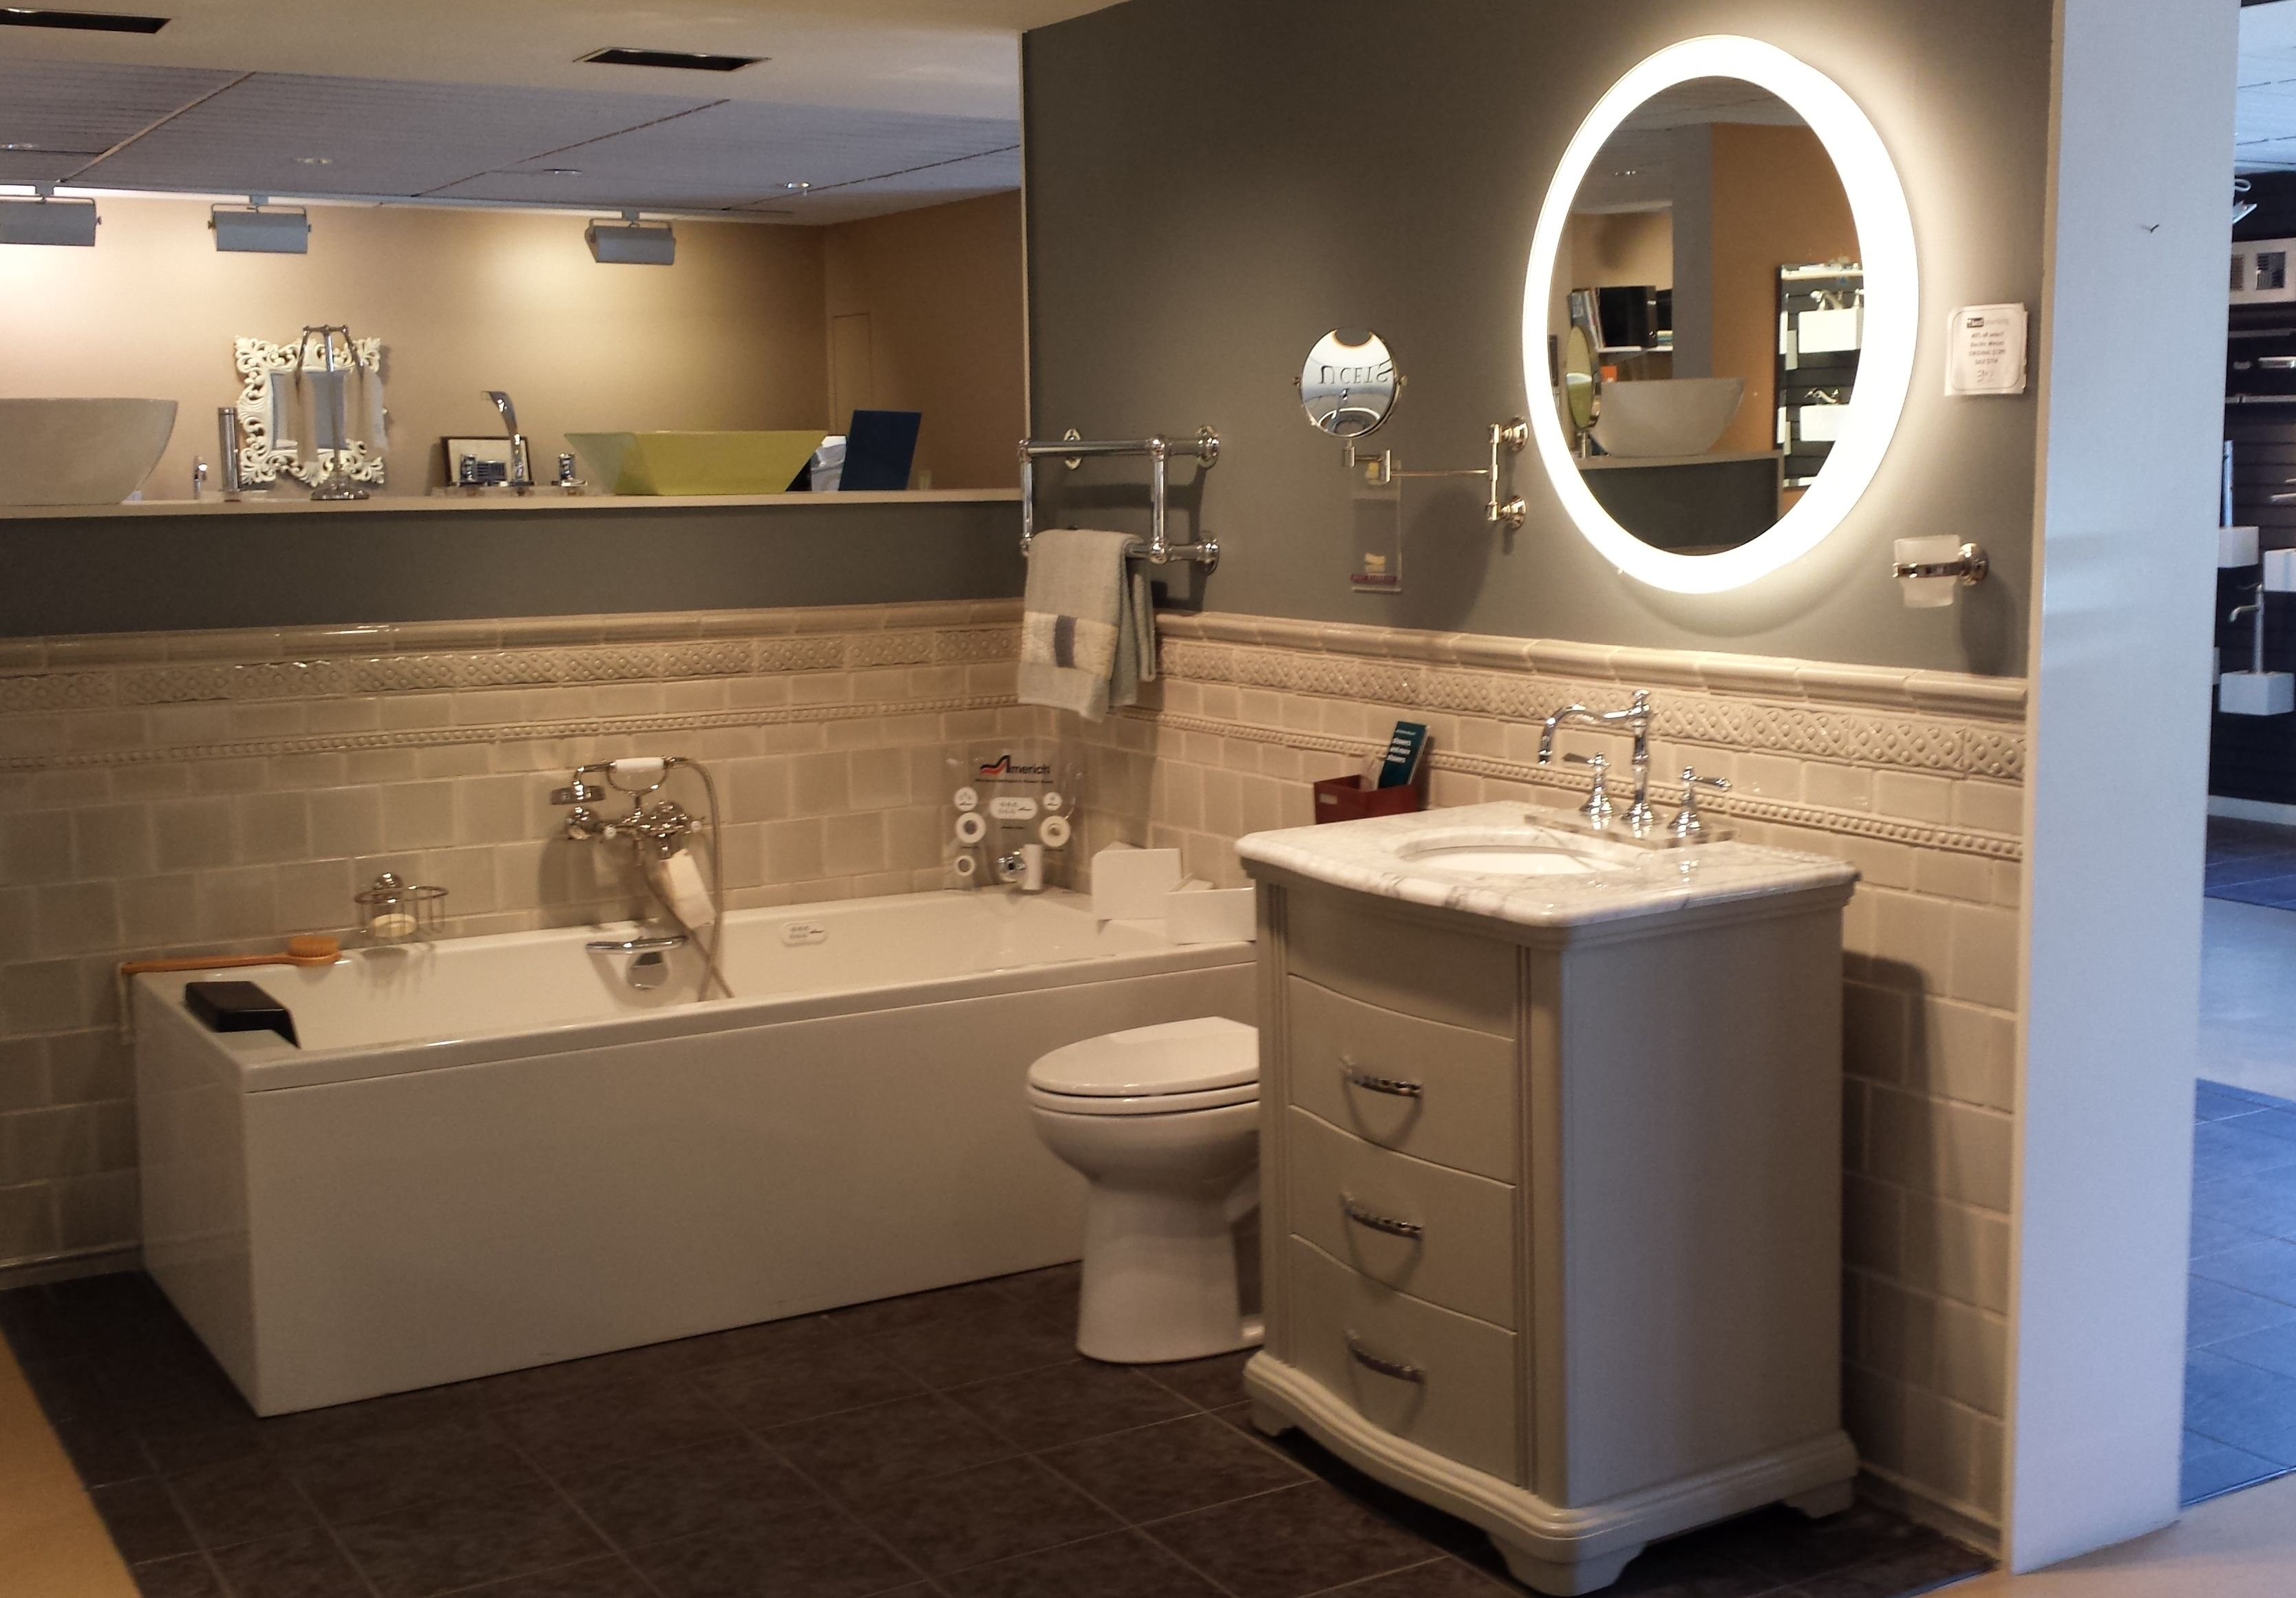 plumbing sacramento gourmet ferguson bath kitchen appliance bathroom showroom appliances sensational me familian of supply size lighting gallery stainless steel near and full indianapolis